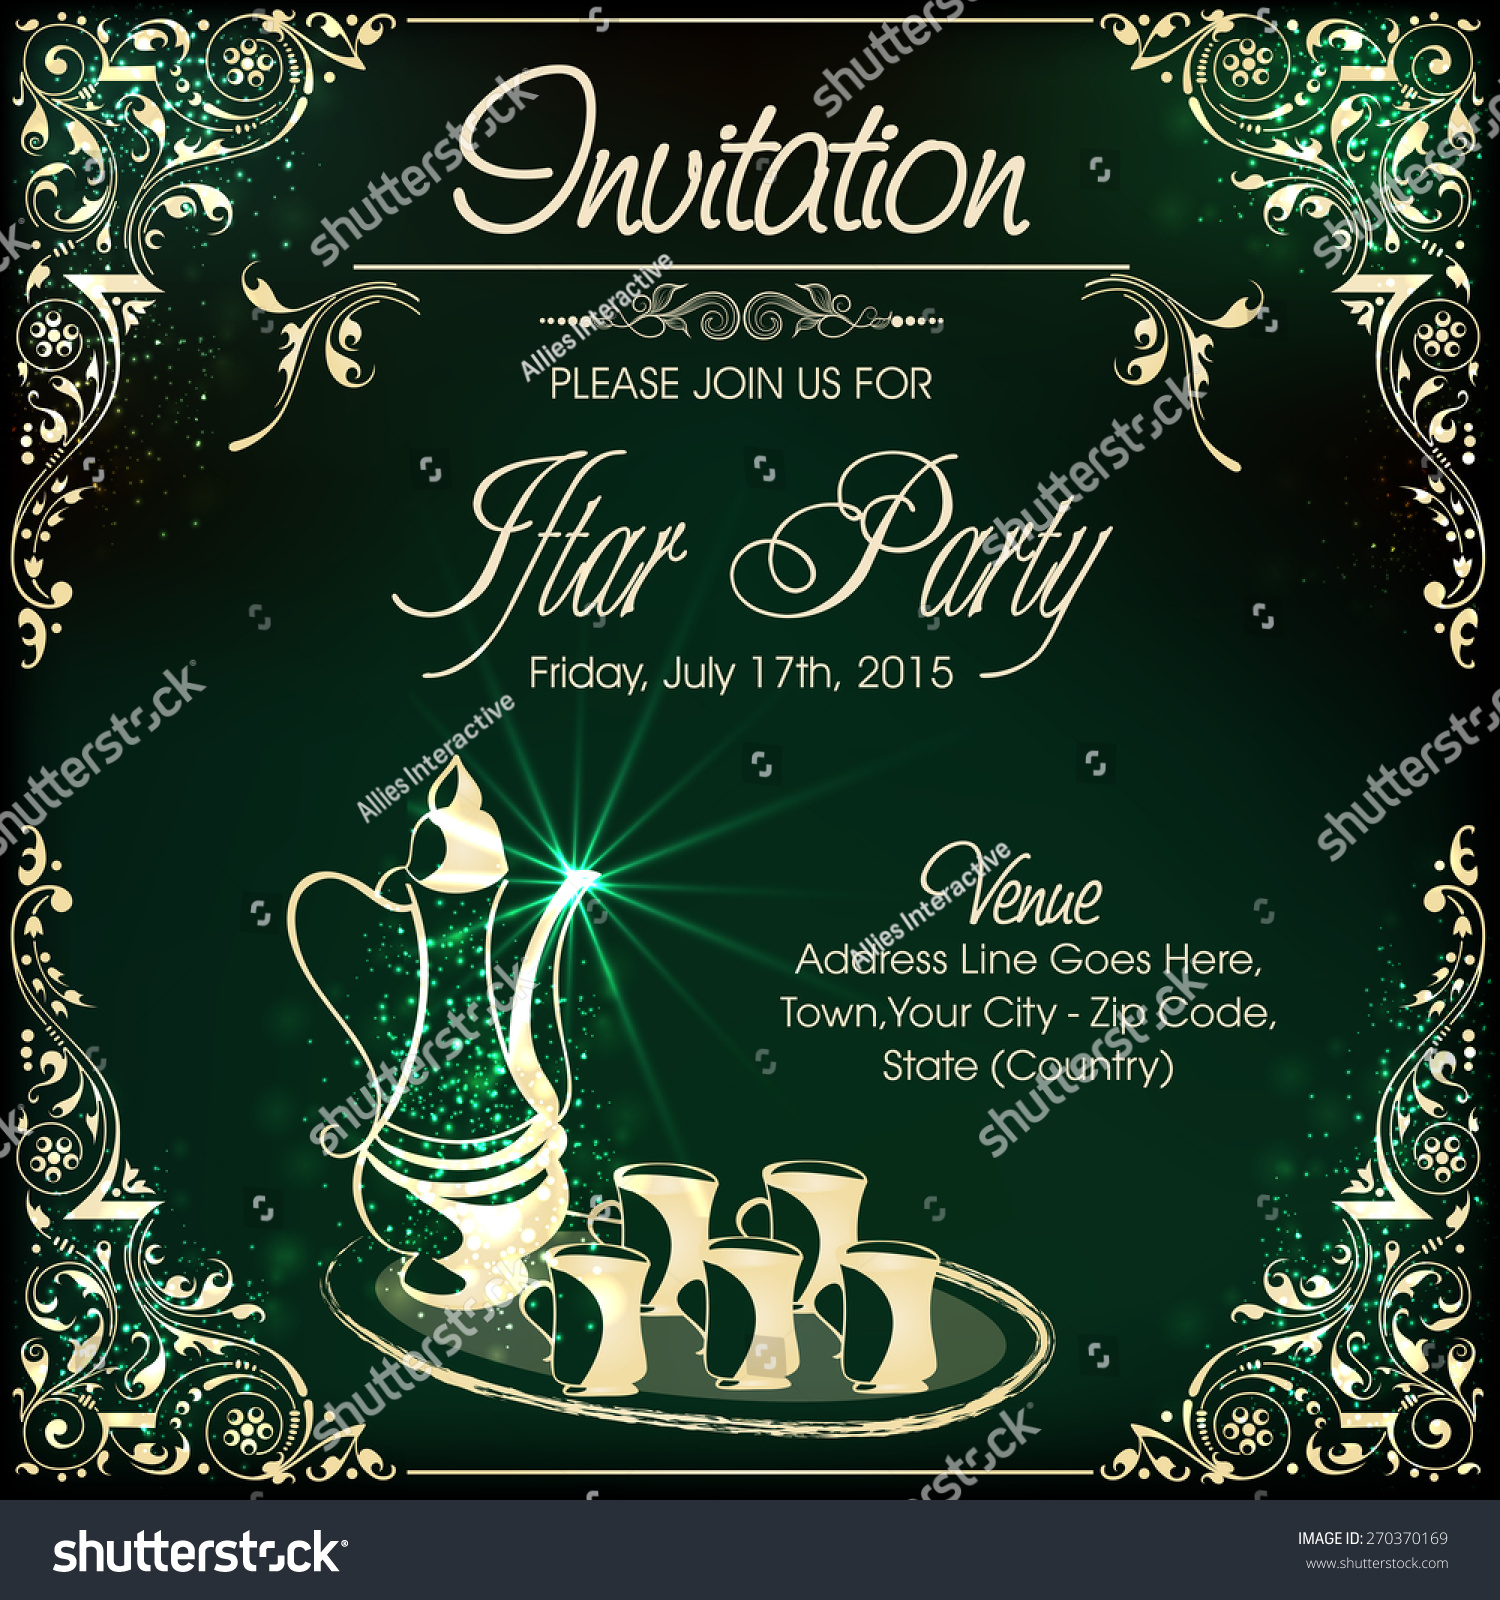 Invitation Card Design Iftar Party Celebrations Vector – Party Invitation Card Design